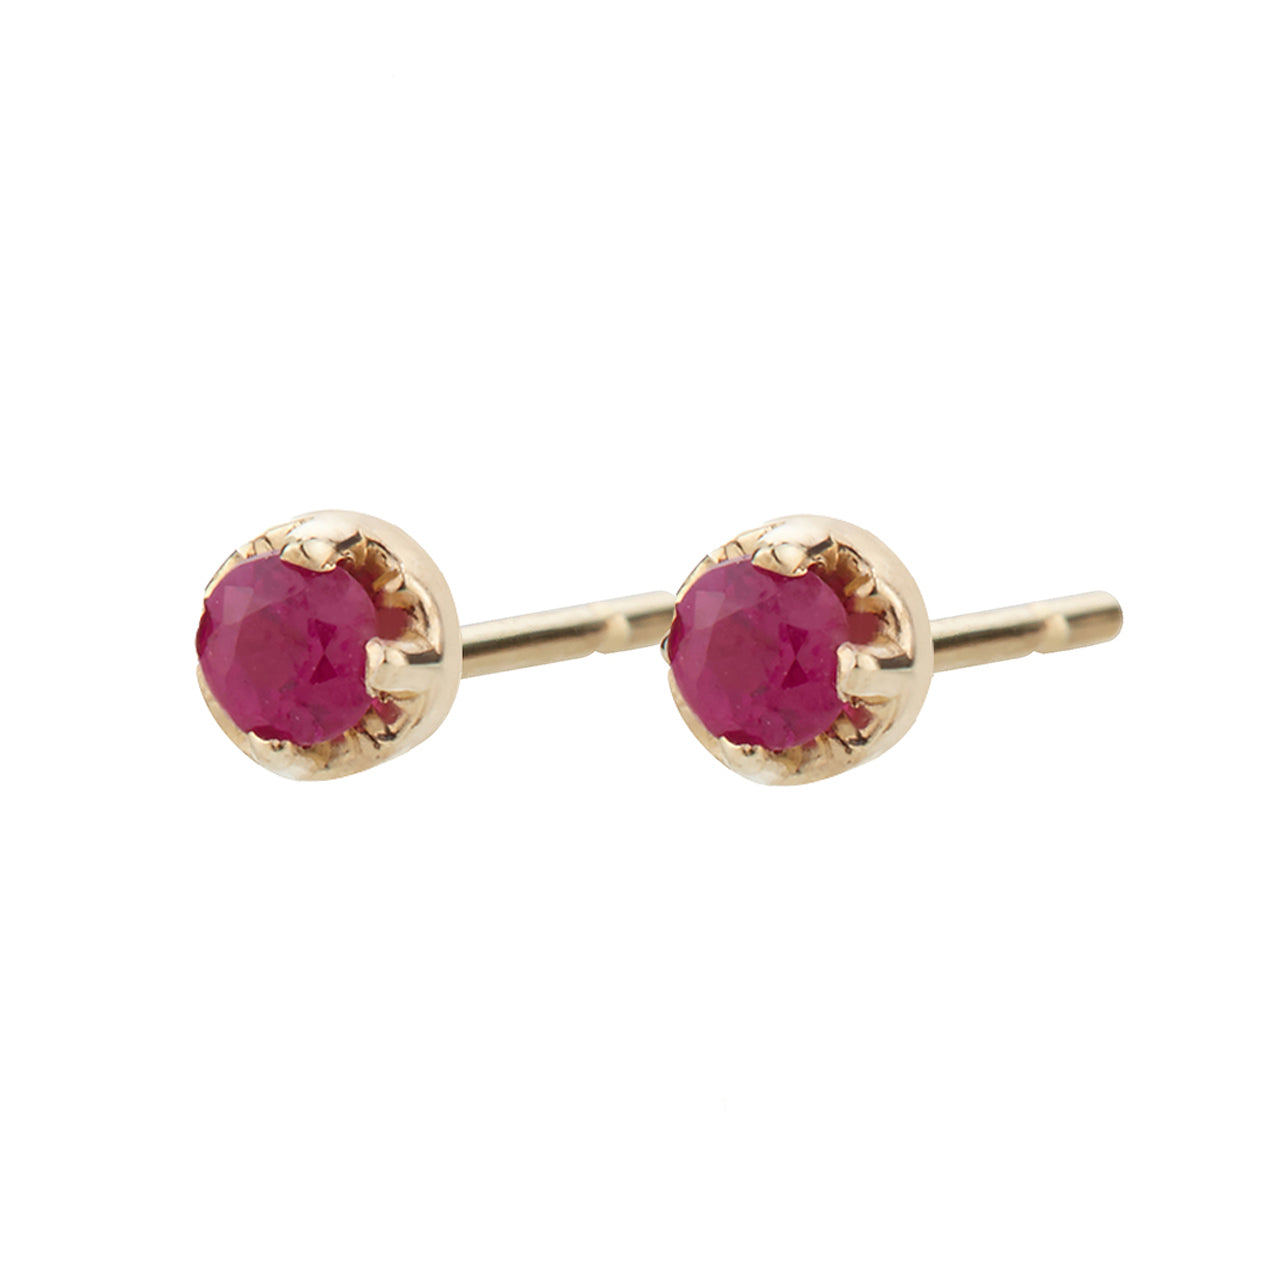 Large ruby prong studs